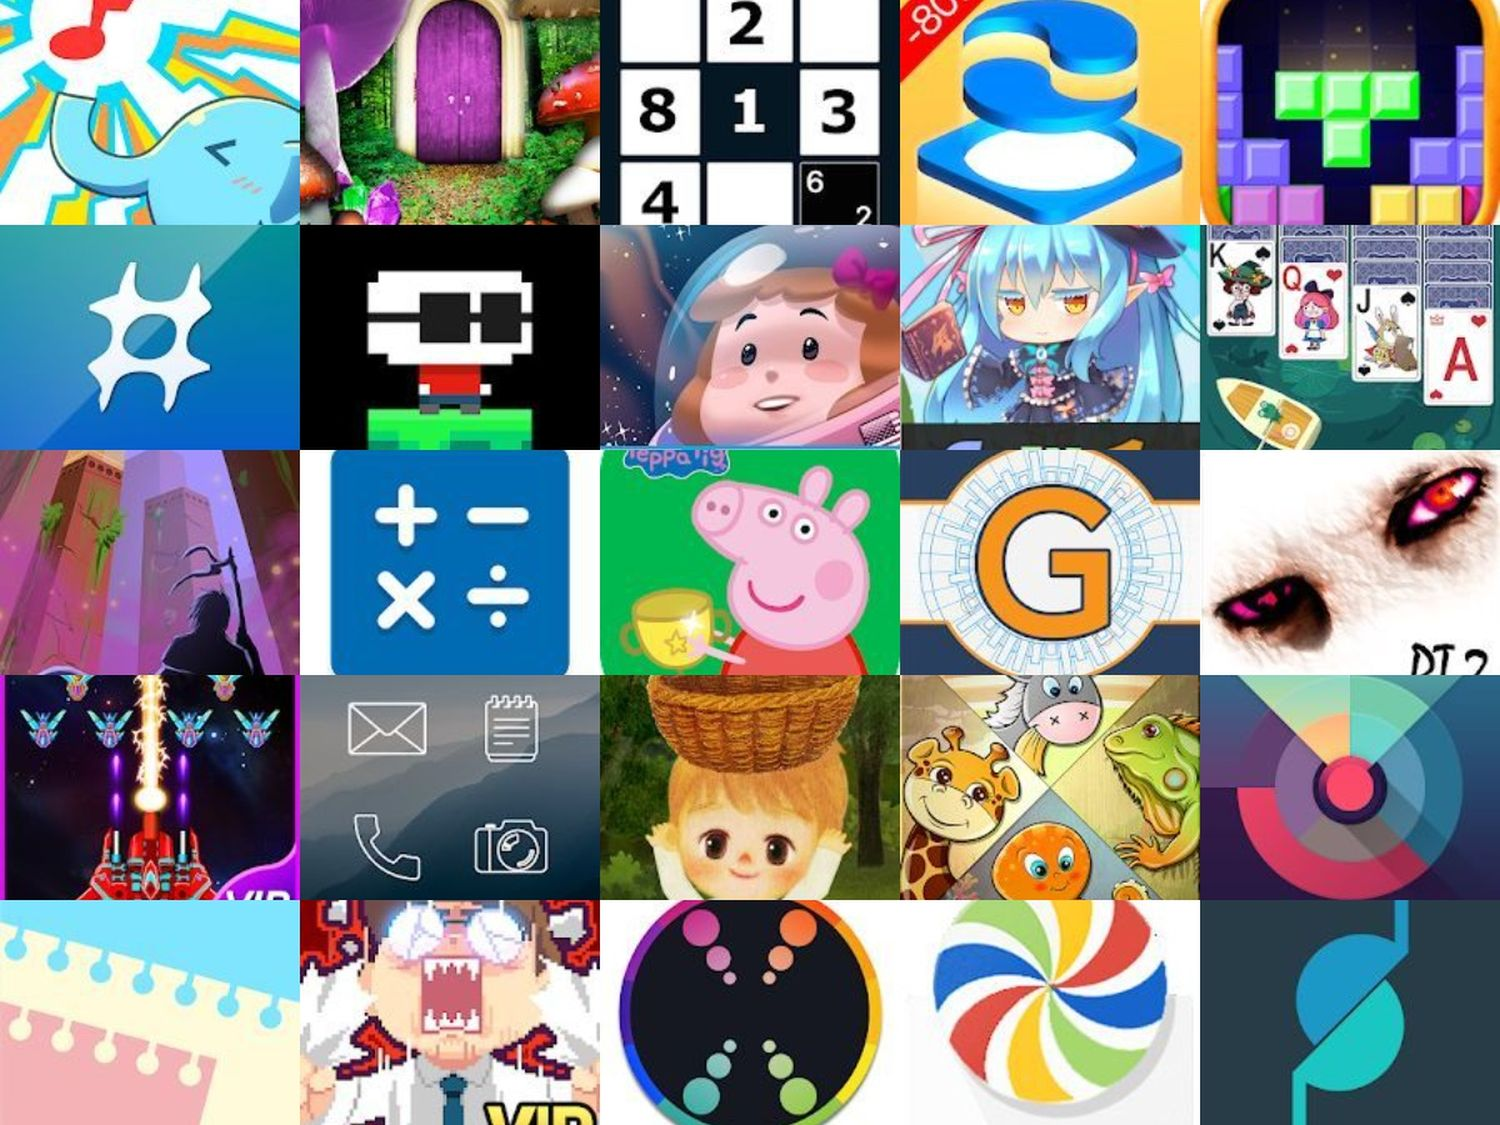 apps 01.08.2021